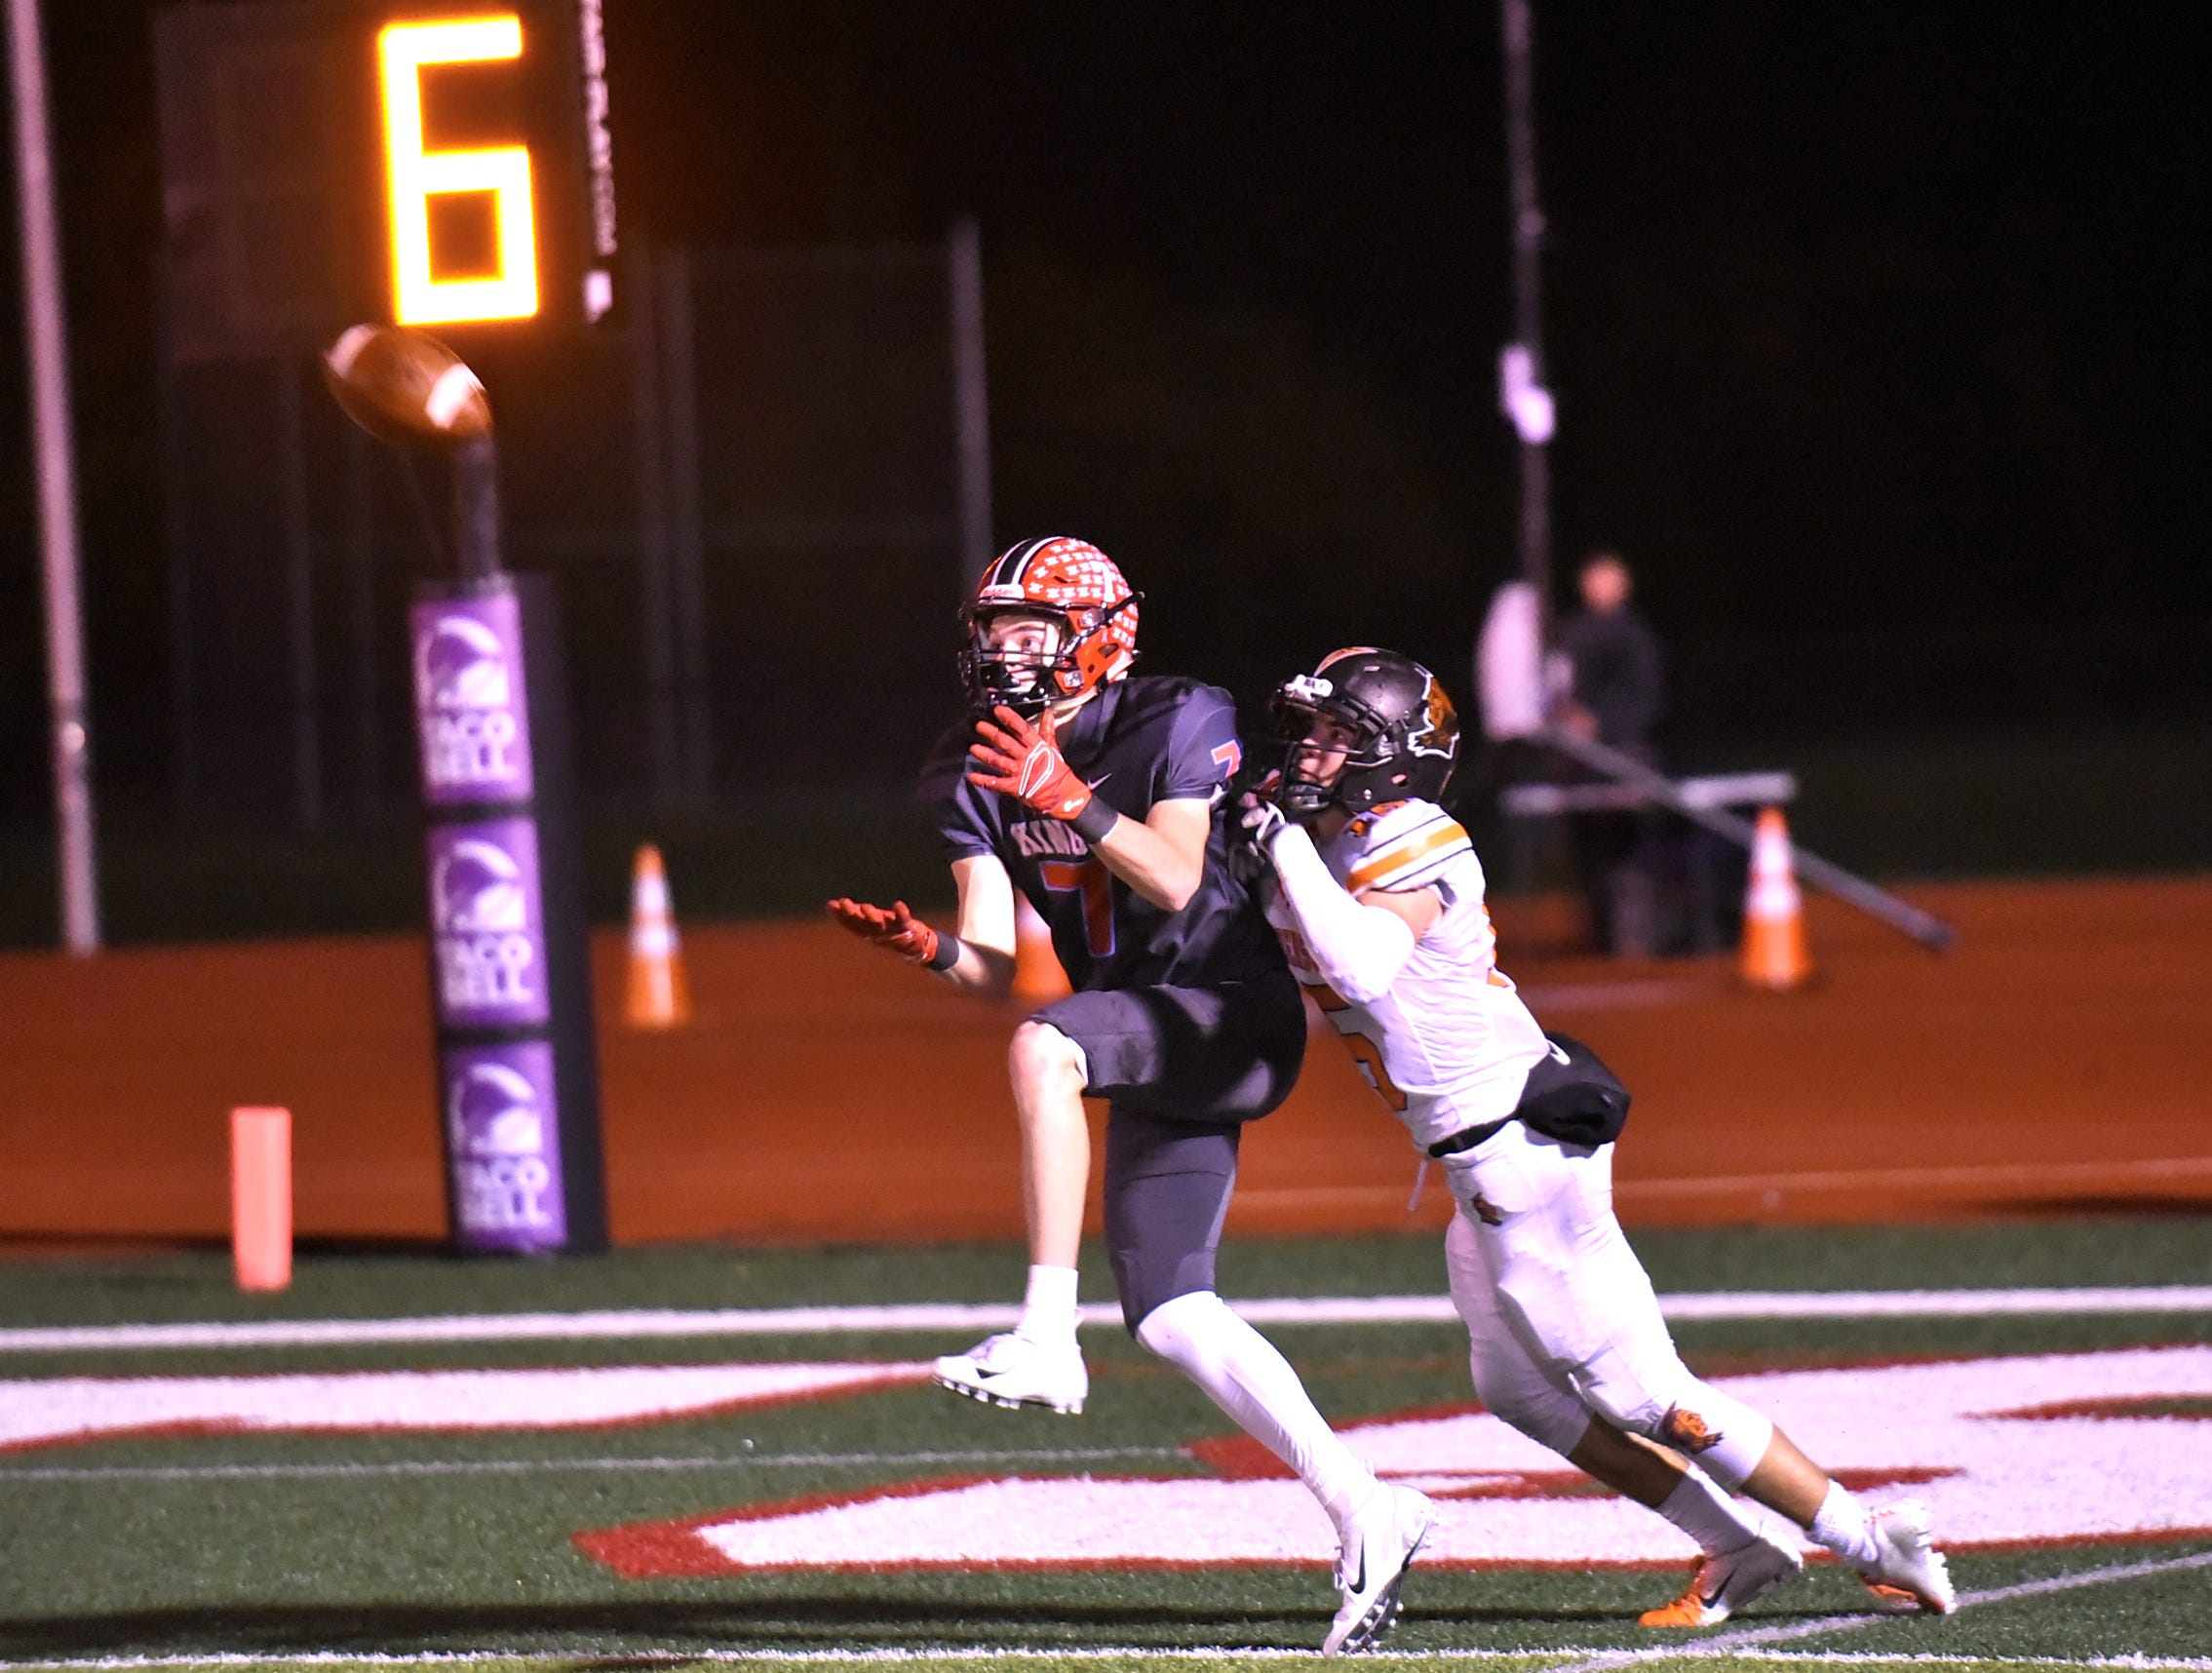 Jack McHugh hauls in a long pass from his quarterback to set up a Kings' first and goal from the 1-yard line, Nov. 2, 2018.